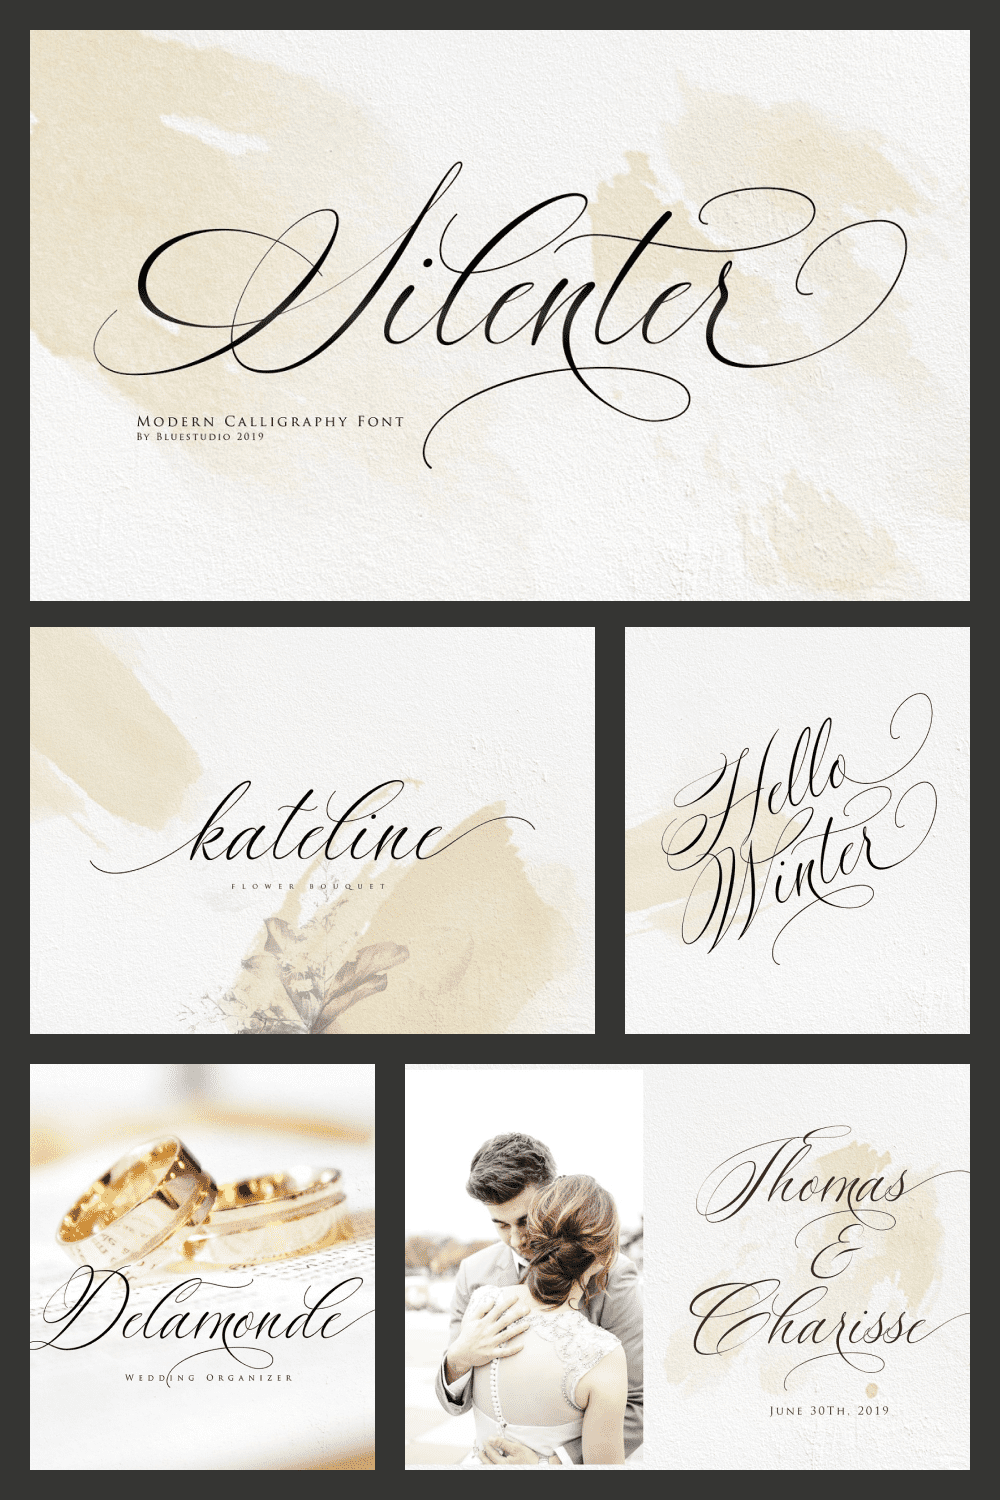 Silenter is suitable for all your design project needs such as: logo design, branding, covers, posters, magazines, wedding invitations, greeting cards, quotes and more.